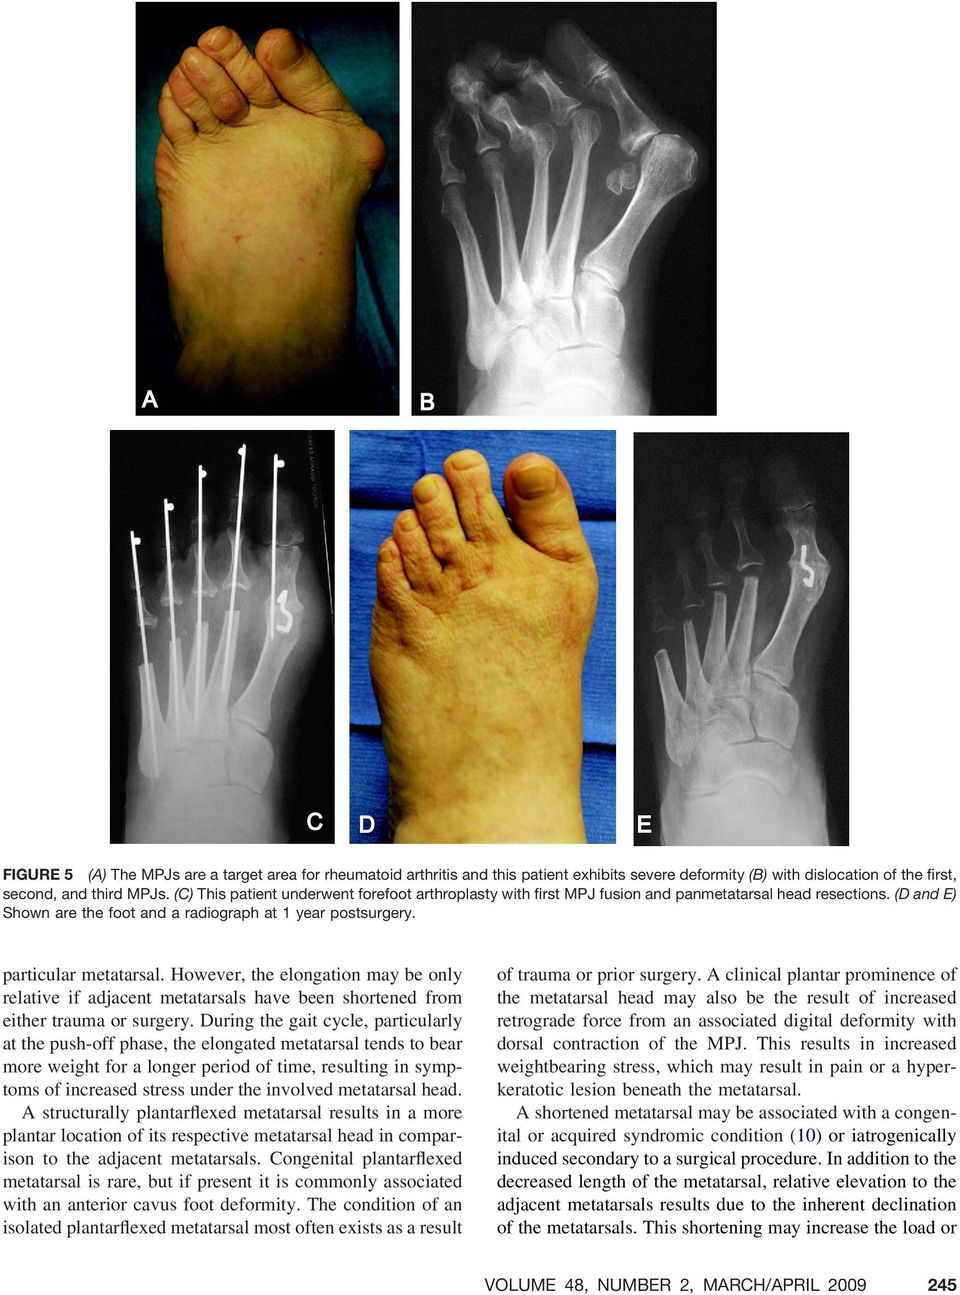 However, the elongation may be only relative if adjacent metatarsals have been shortened from either trauma or surgery.